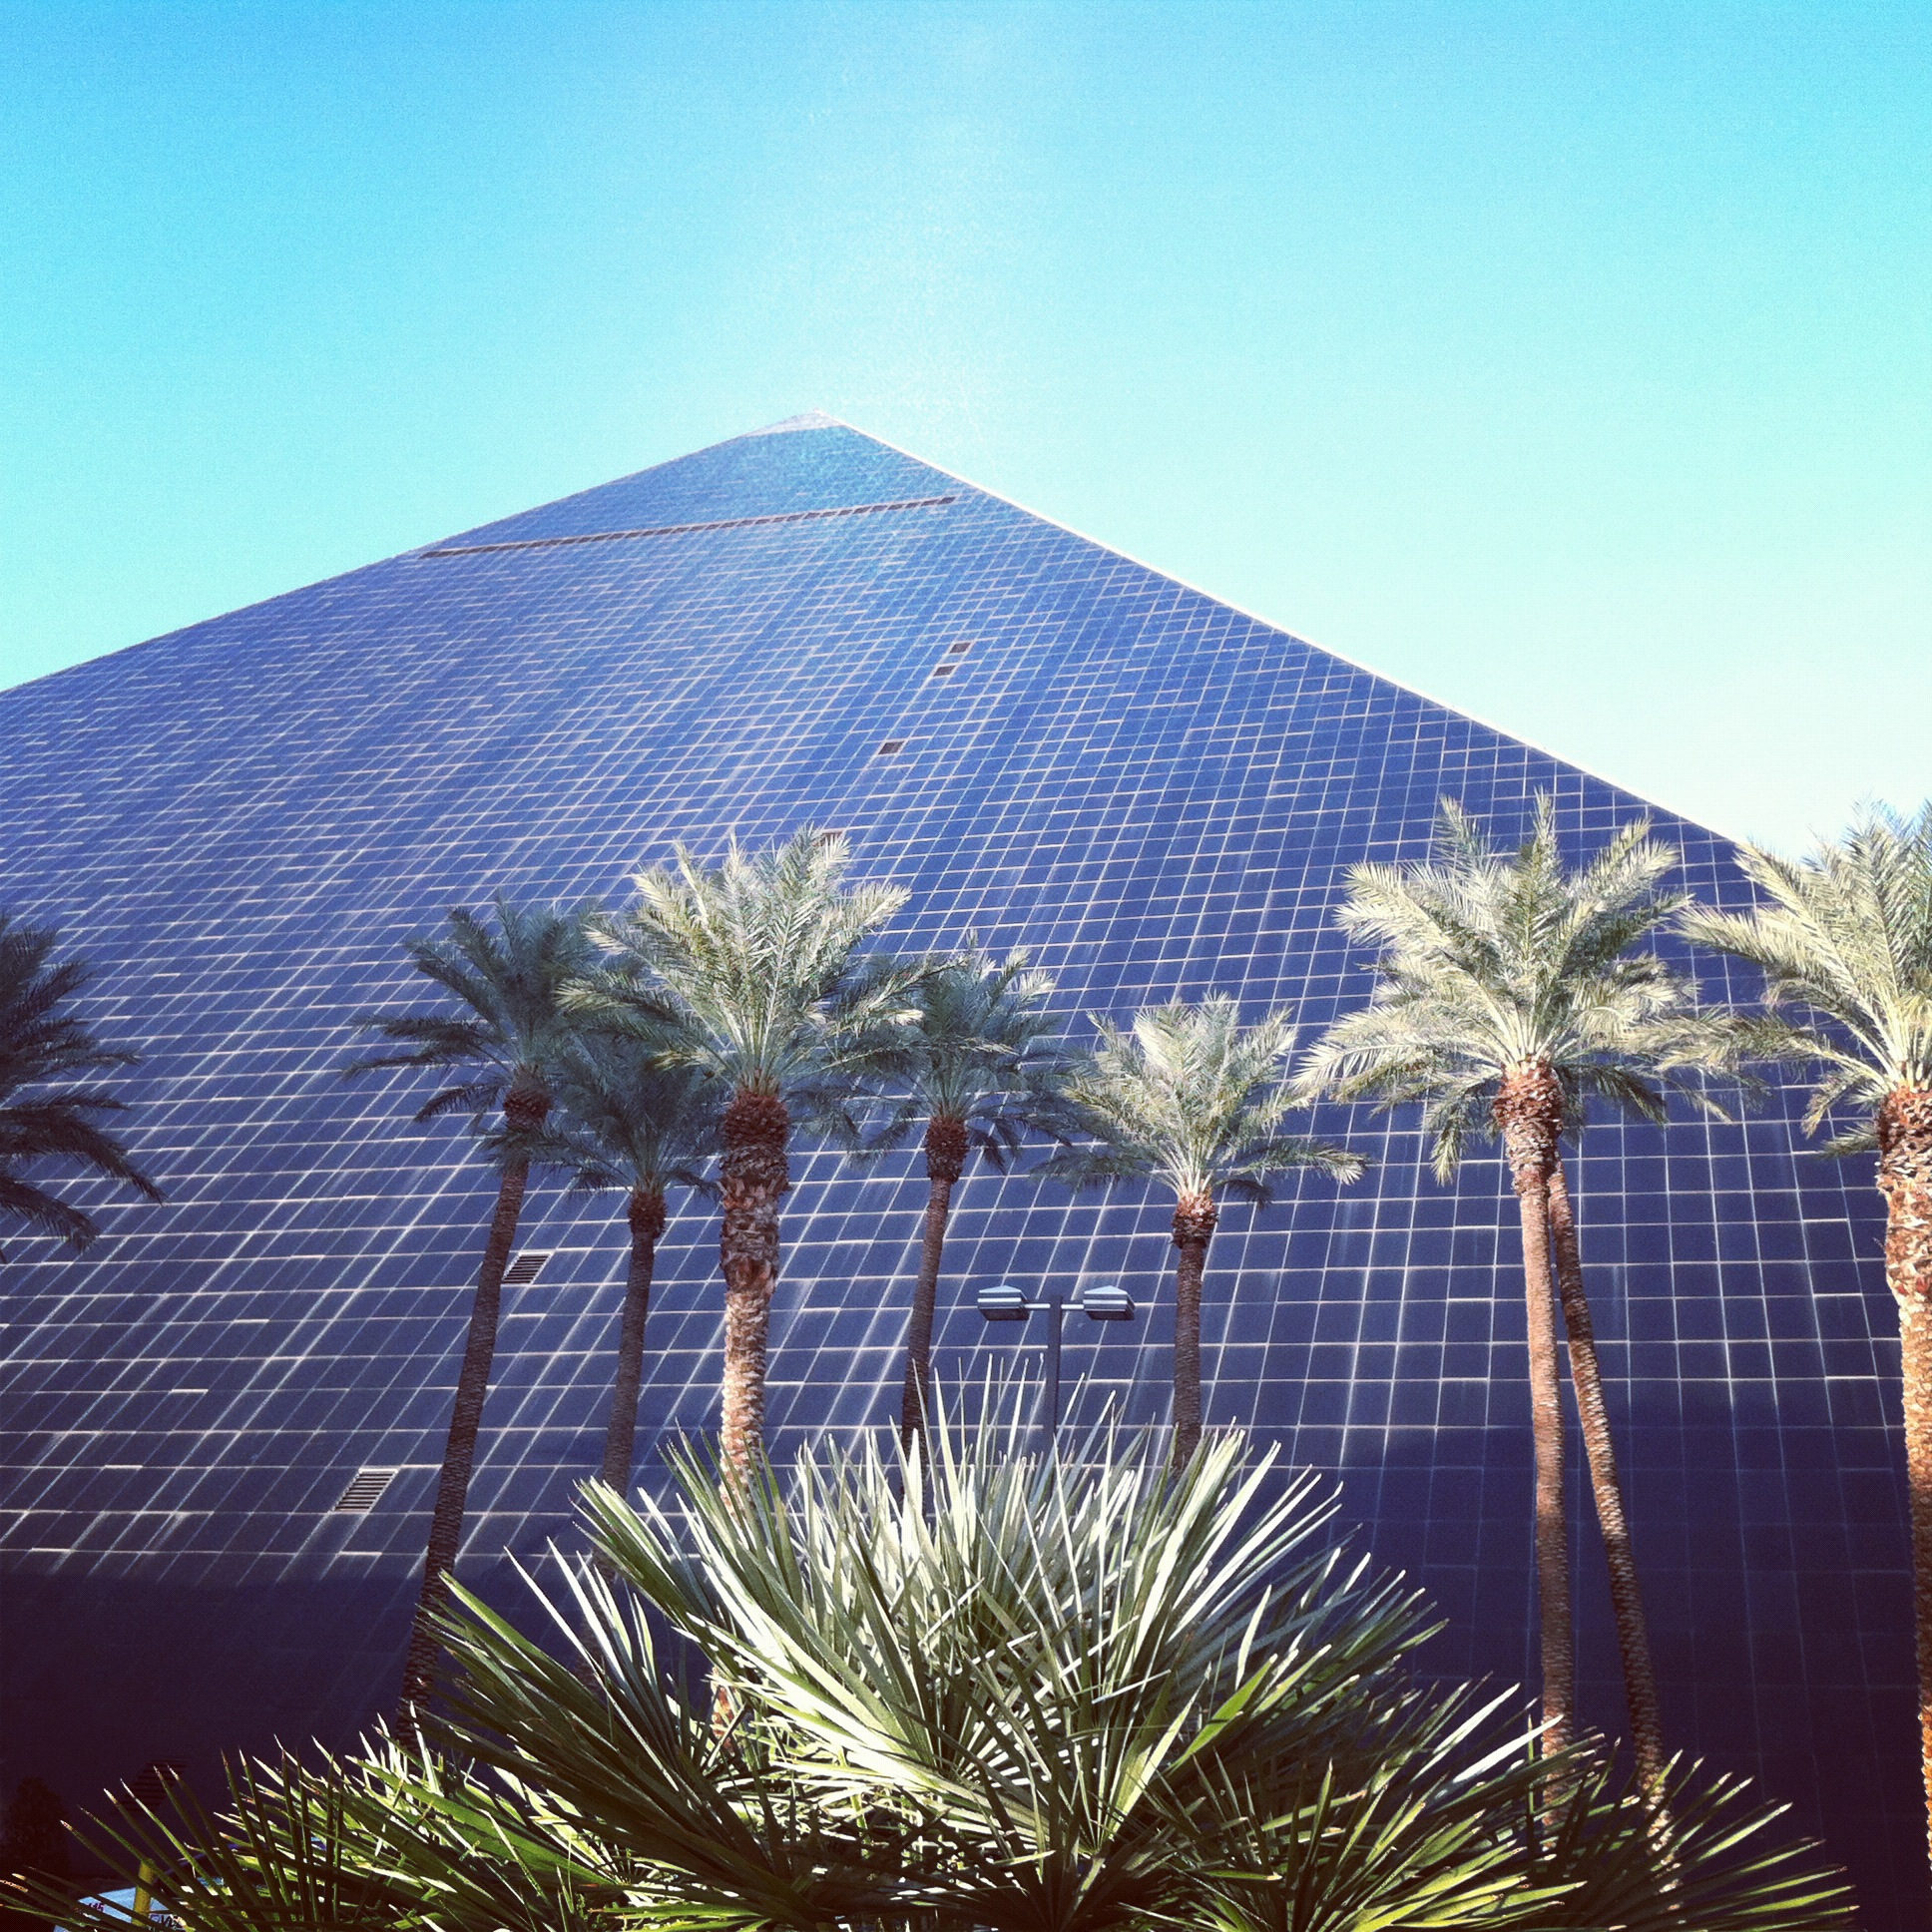 Our Luxor-ious accommodations. Meh.